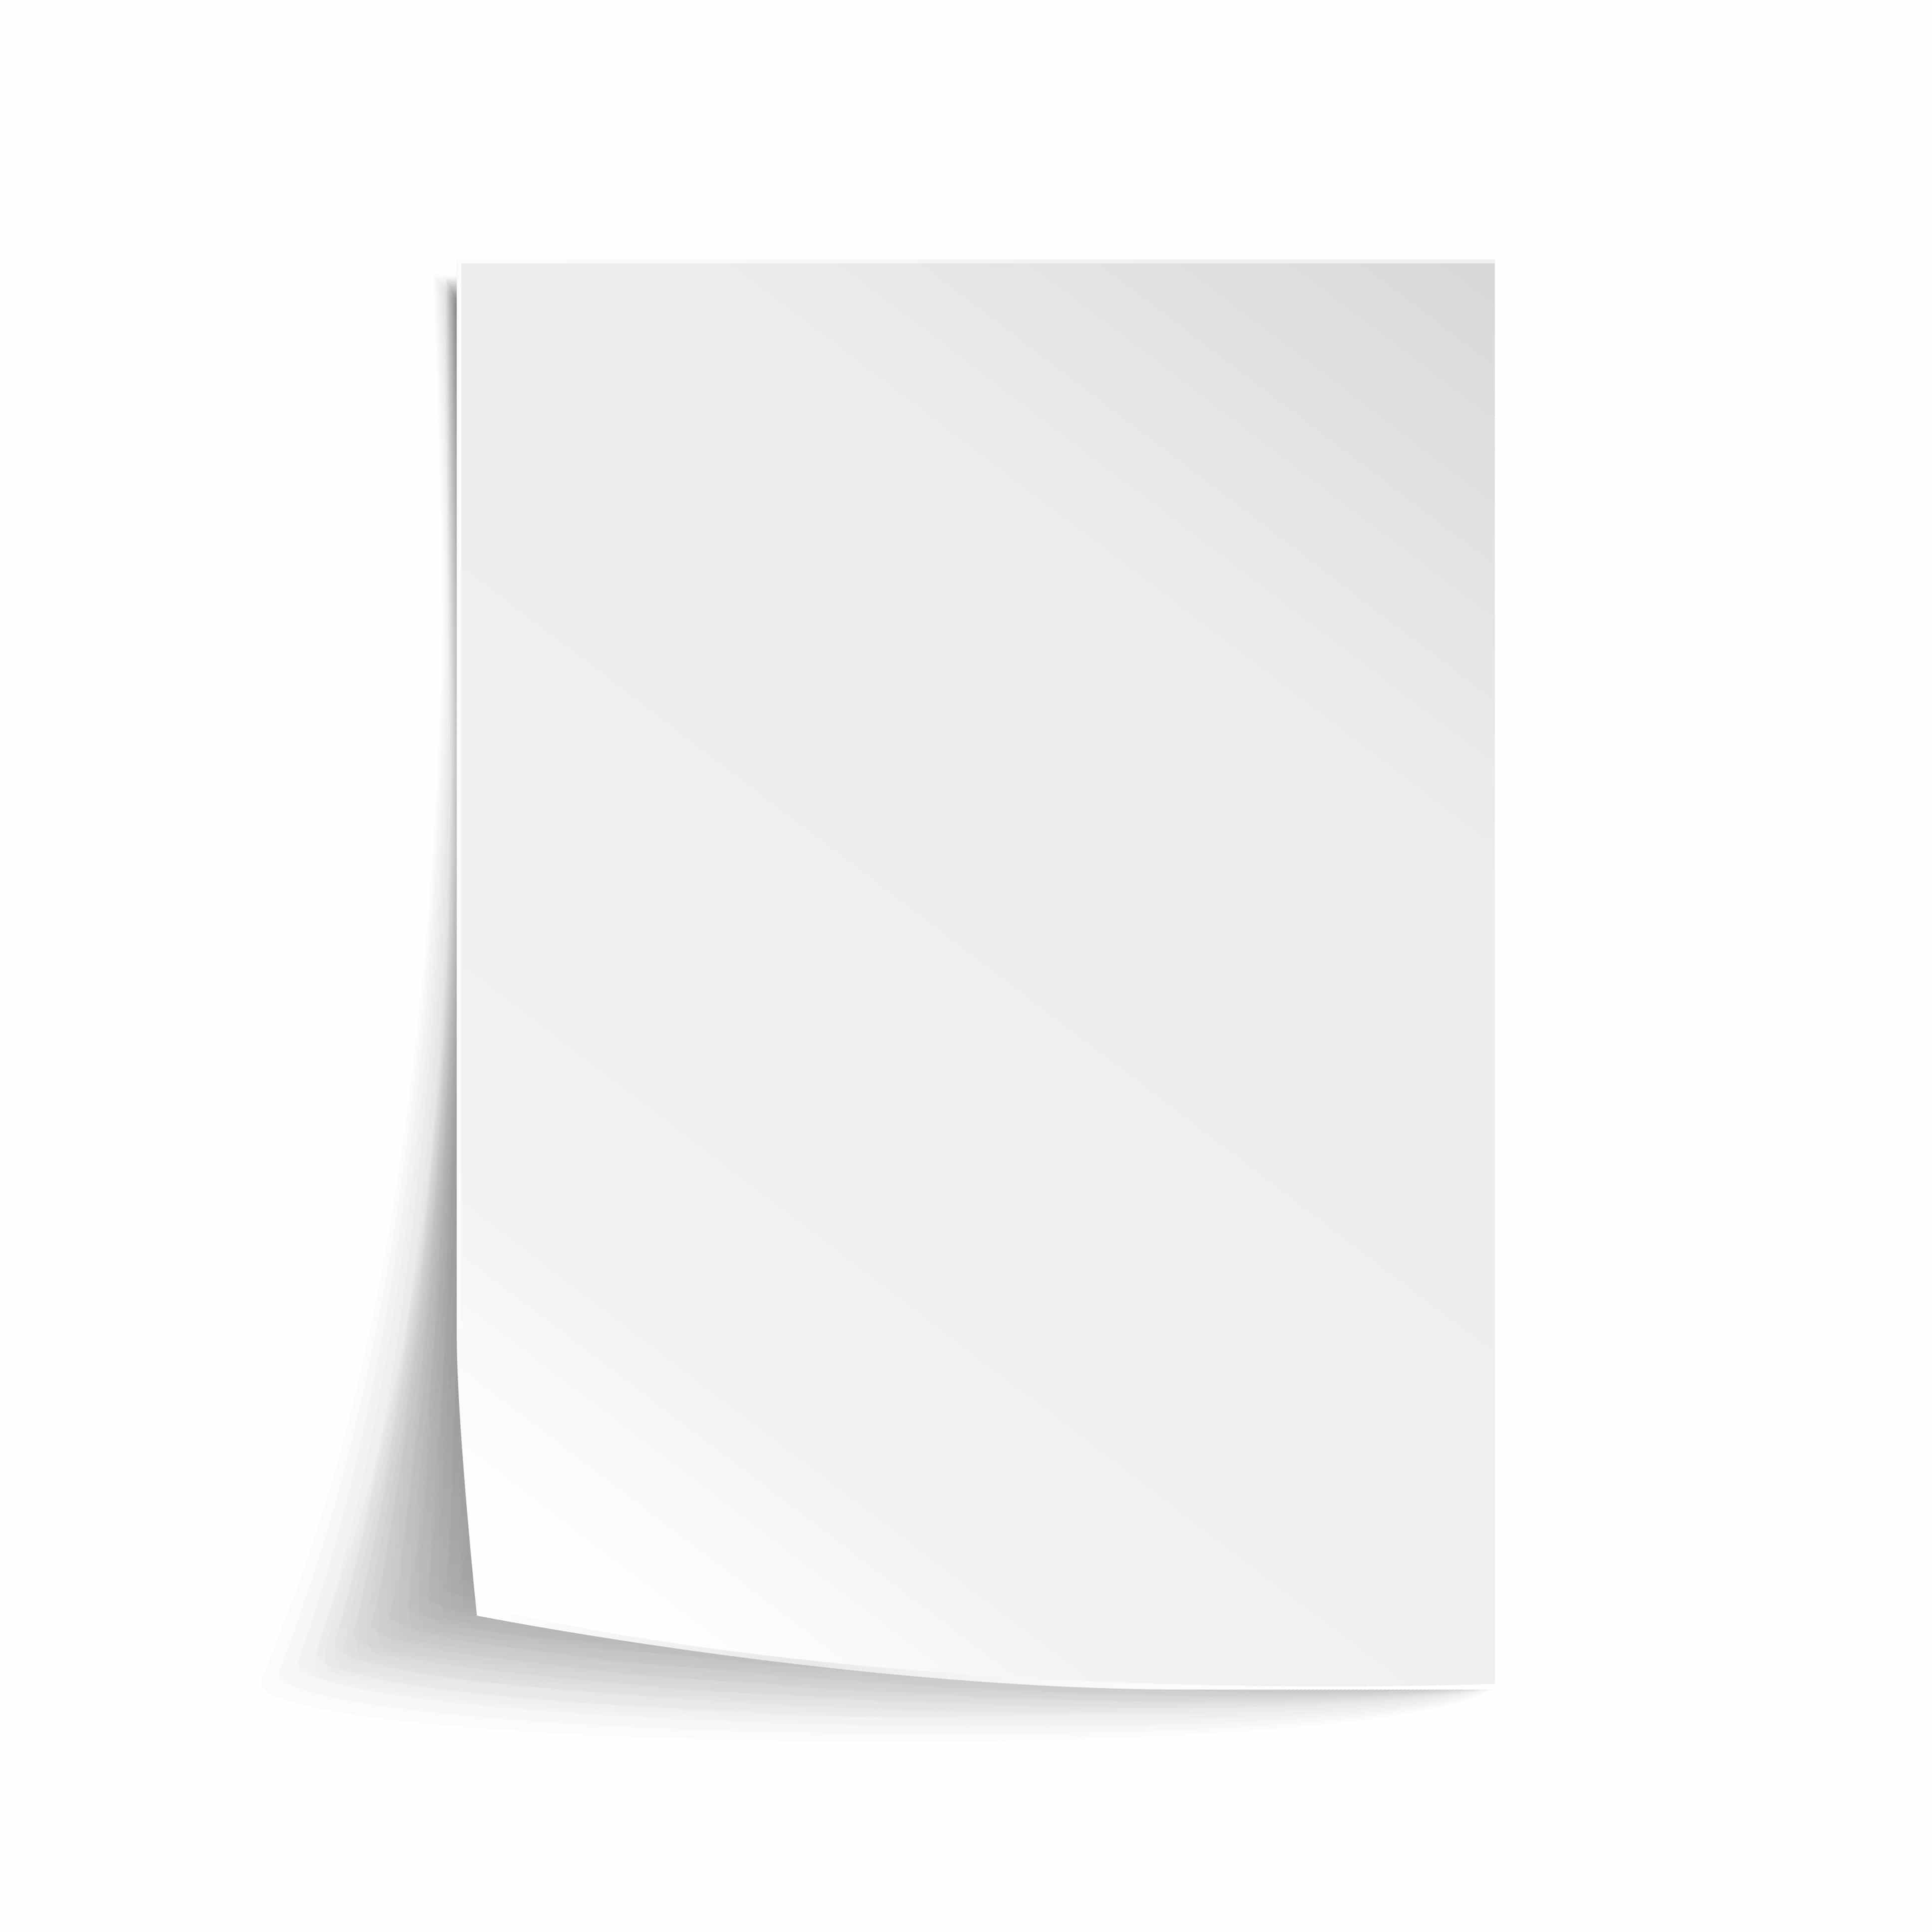 Vector White sheet of paper. Realistic empty paper note template of A4 format with soft shadows isolated on white background